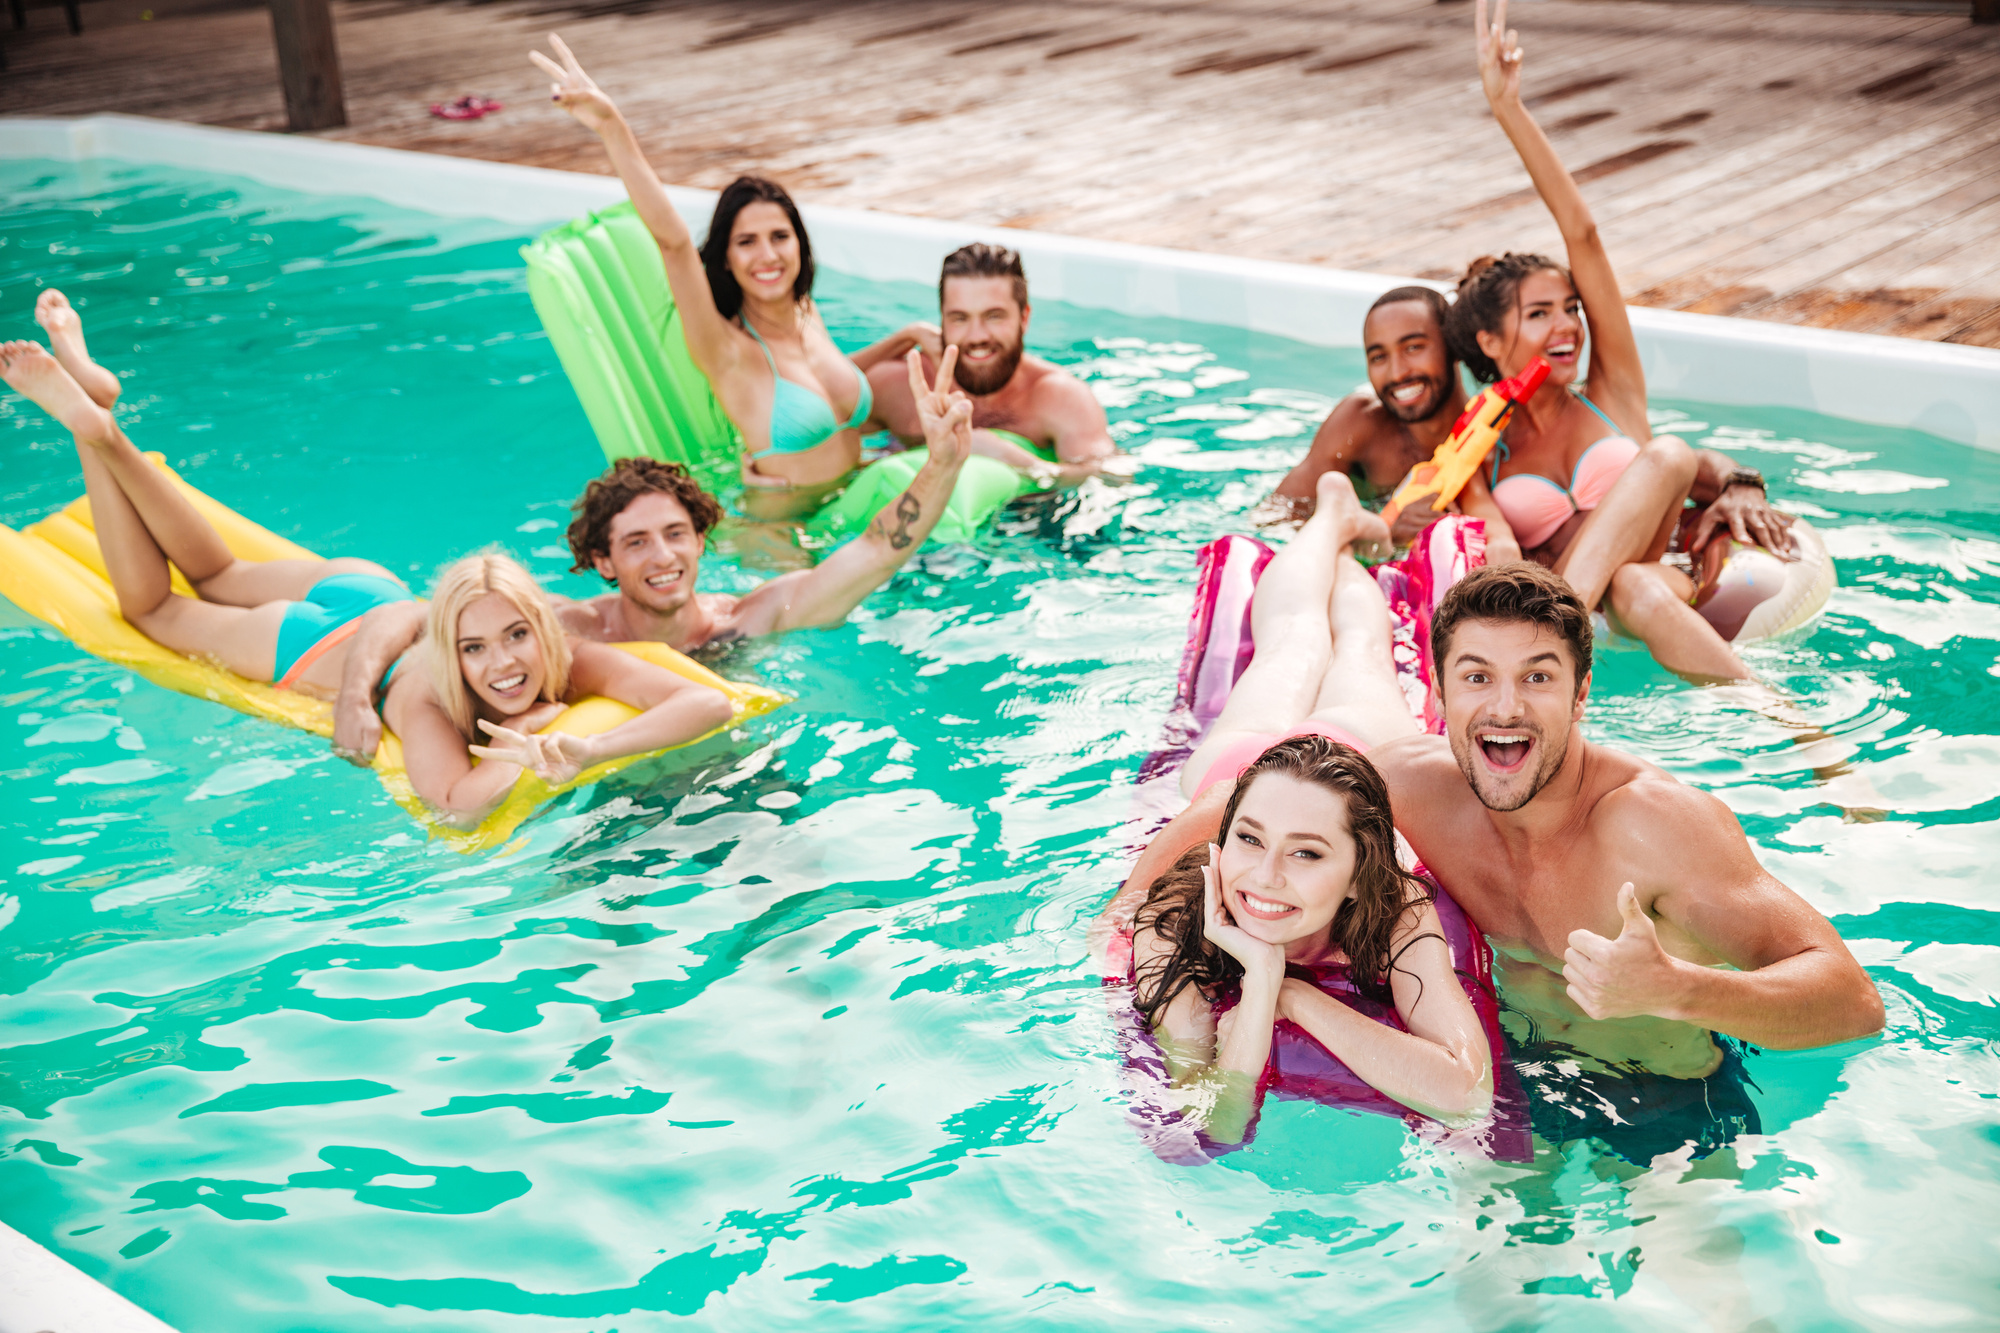 Fun in the Sun: 5 Awesome Swimming Pool Games for the Whole Family